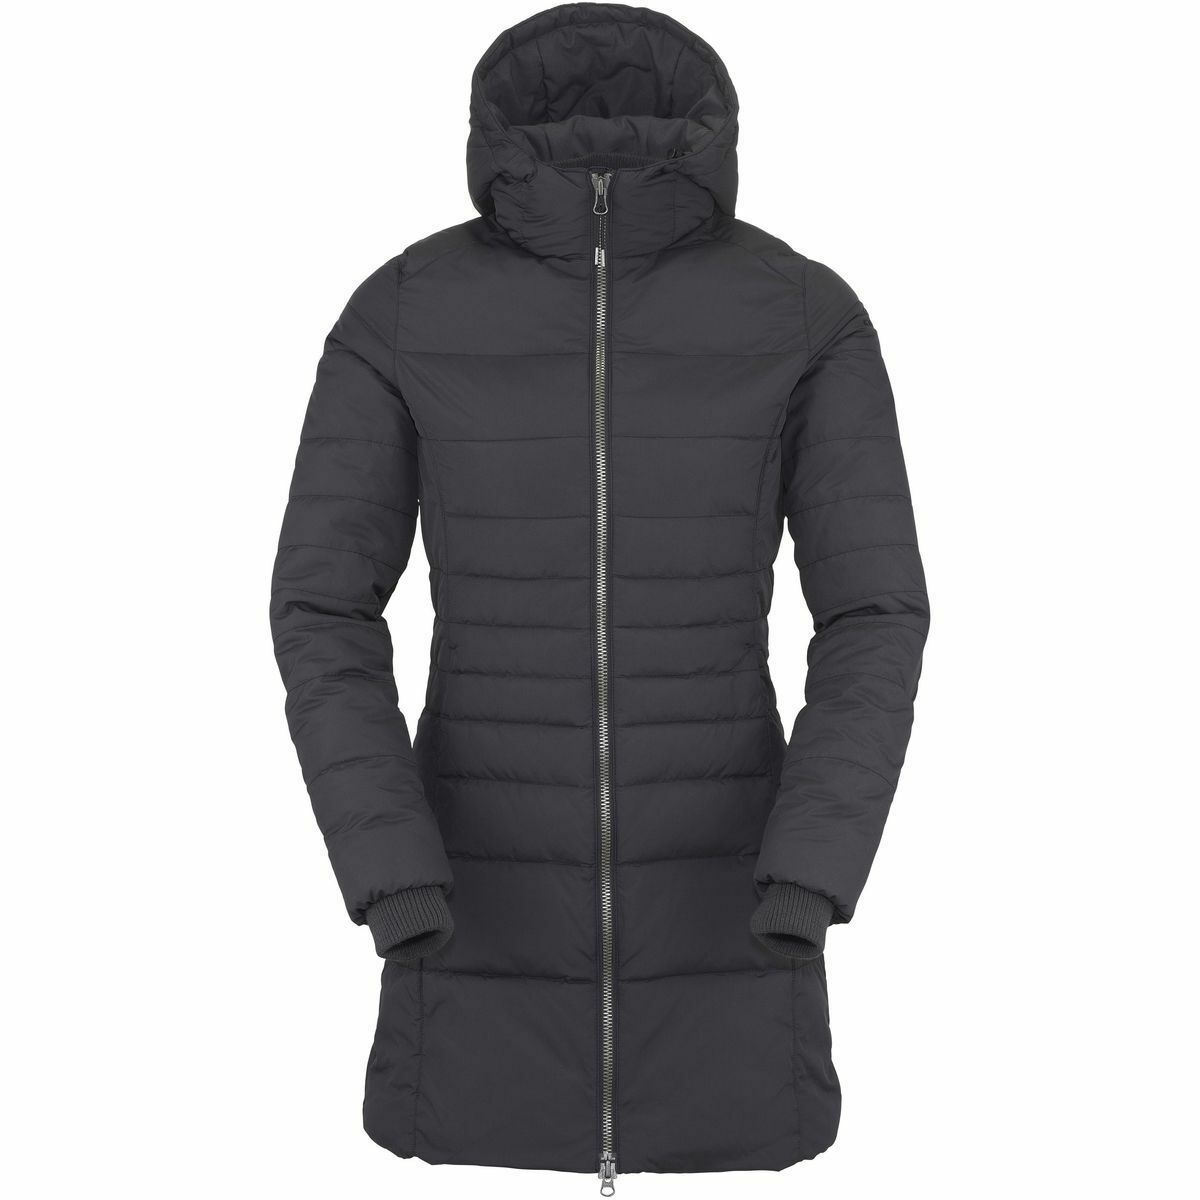 Eider Orgeval II ISOLATO ELOFT DOWN COAT donna TAGLIA 12 Medium FR 40